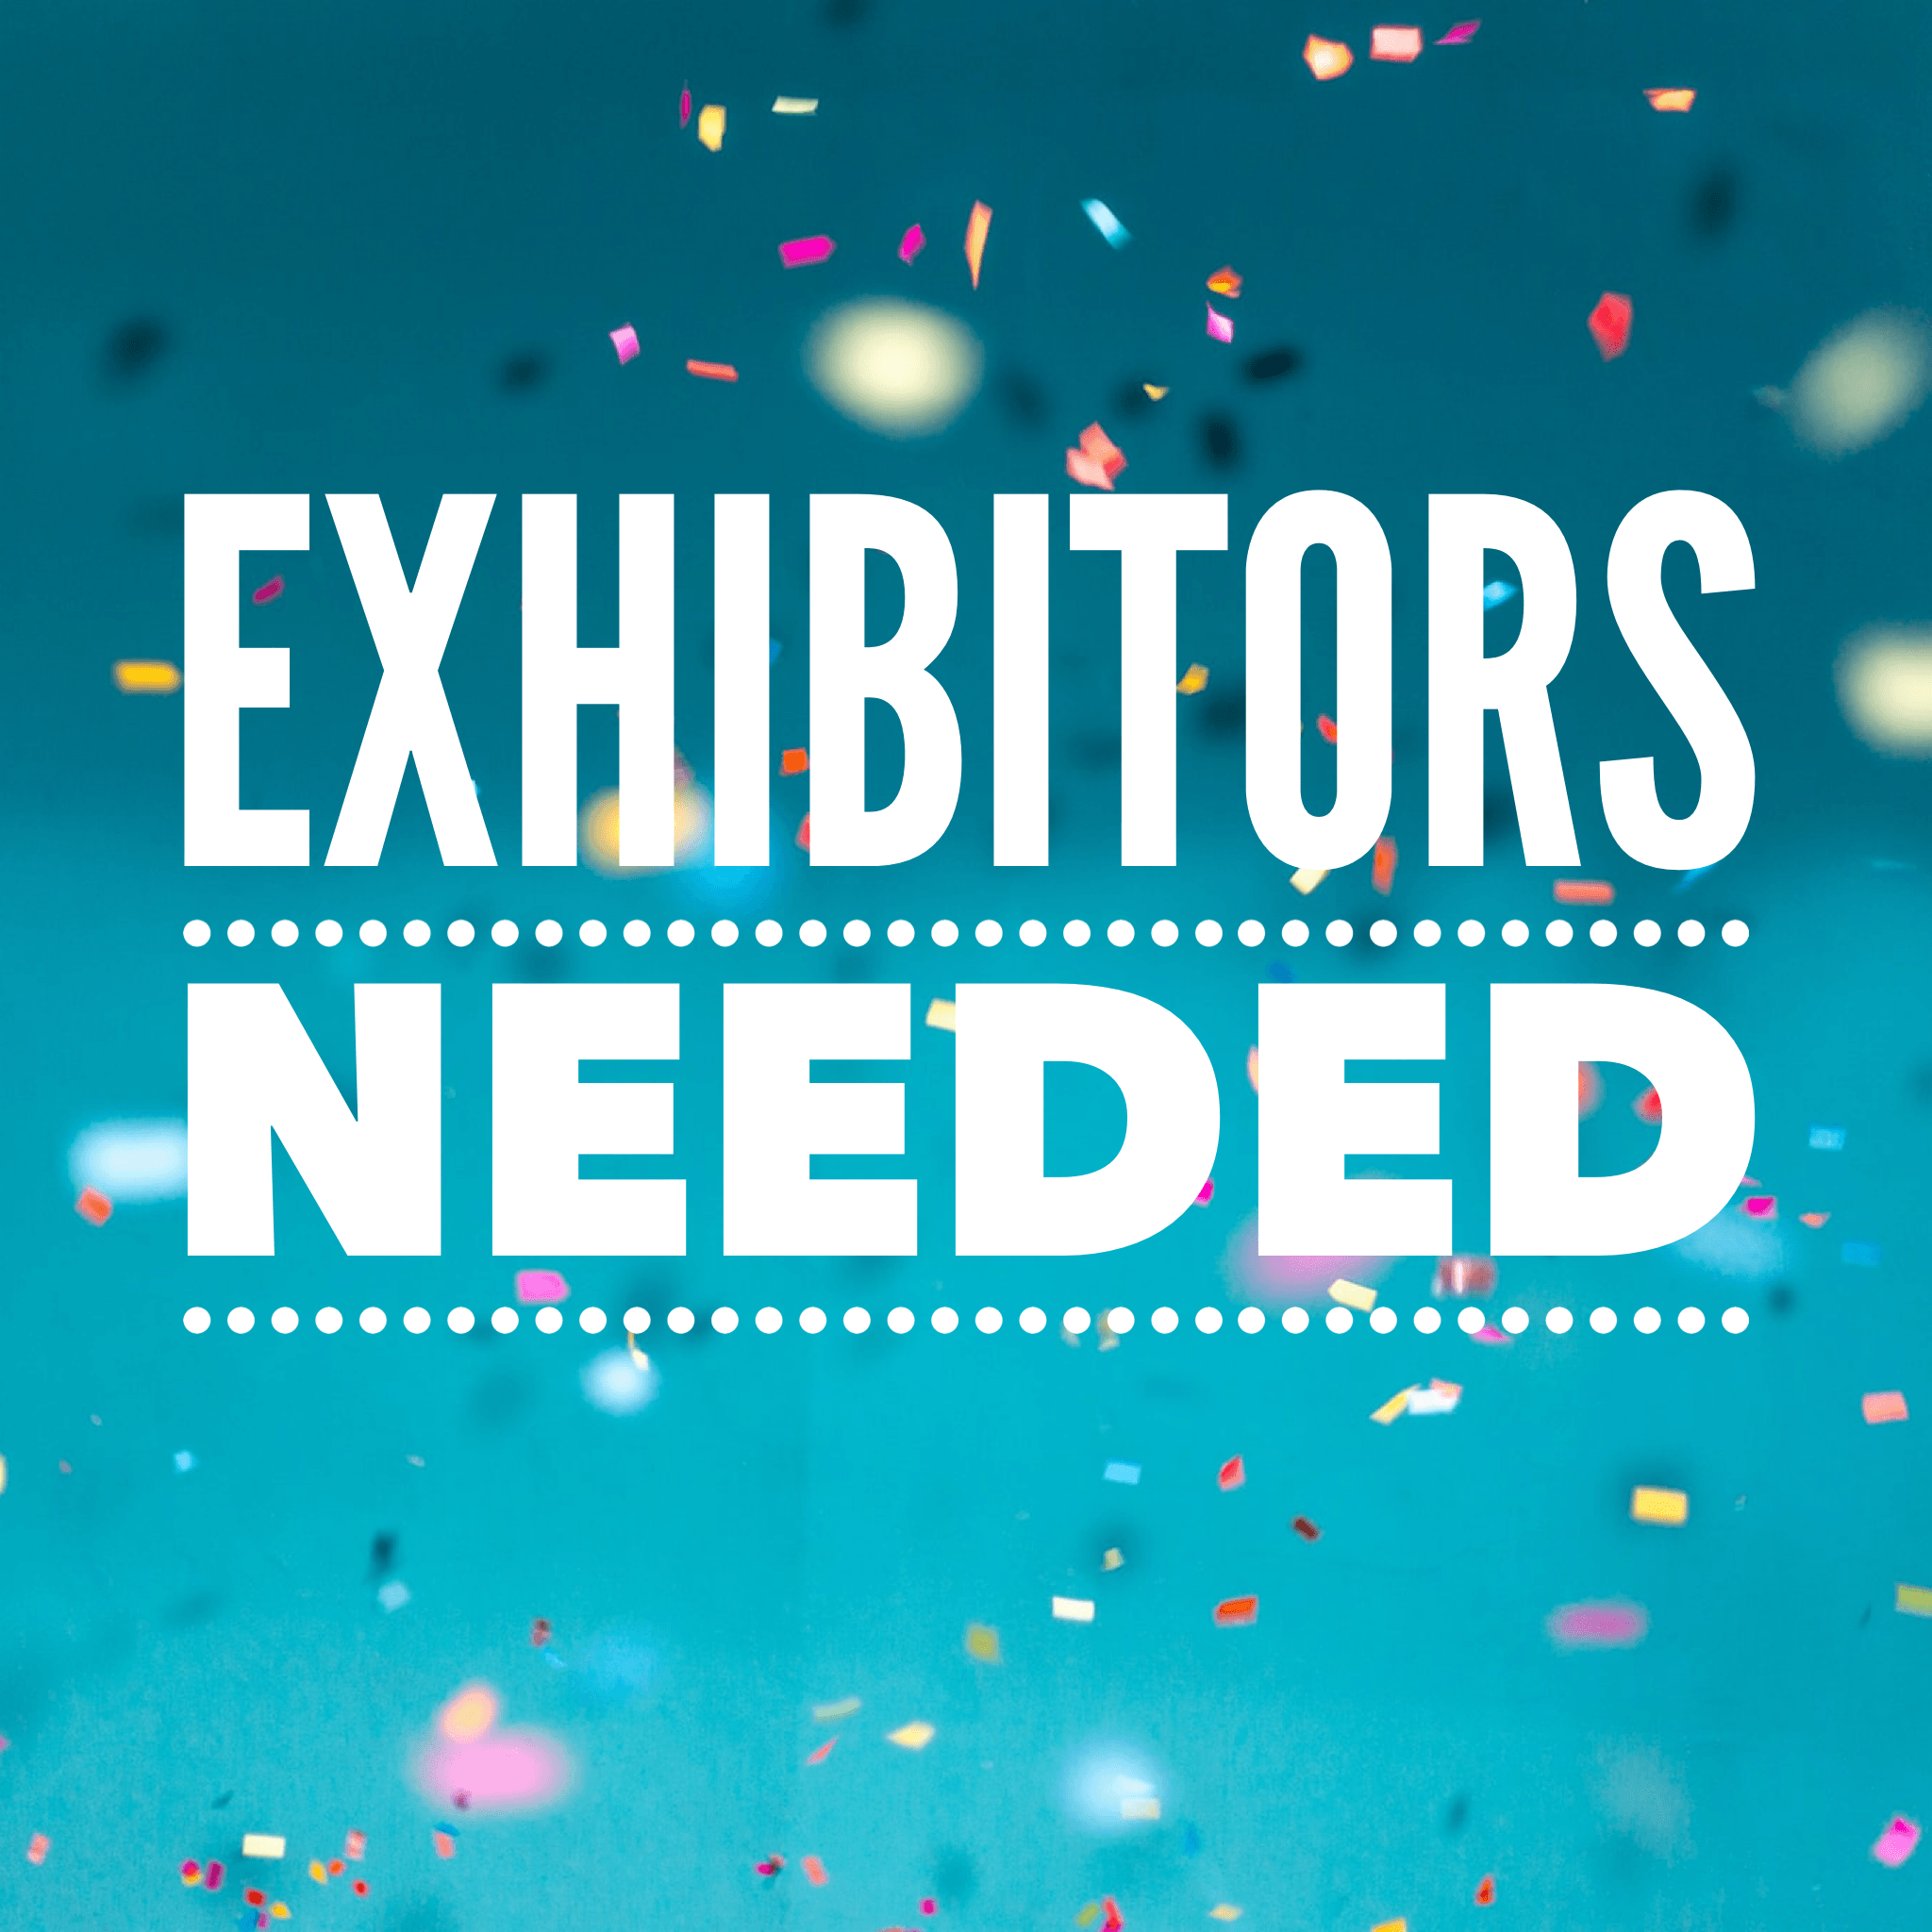 Exhibitors Needed